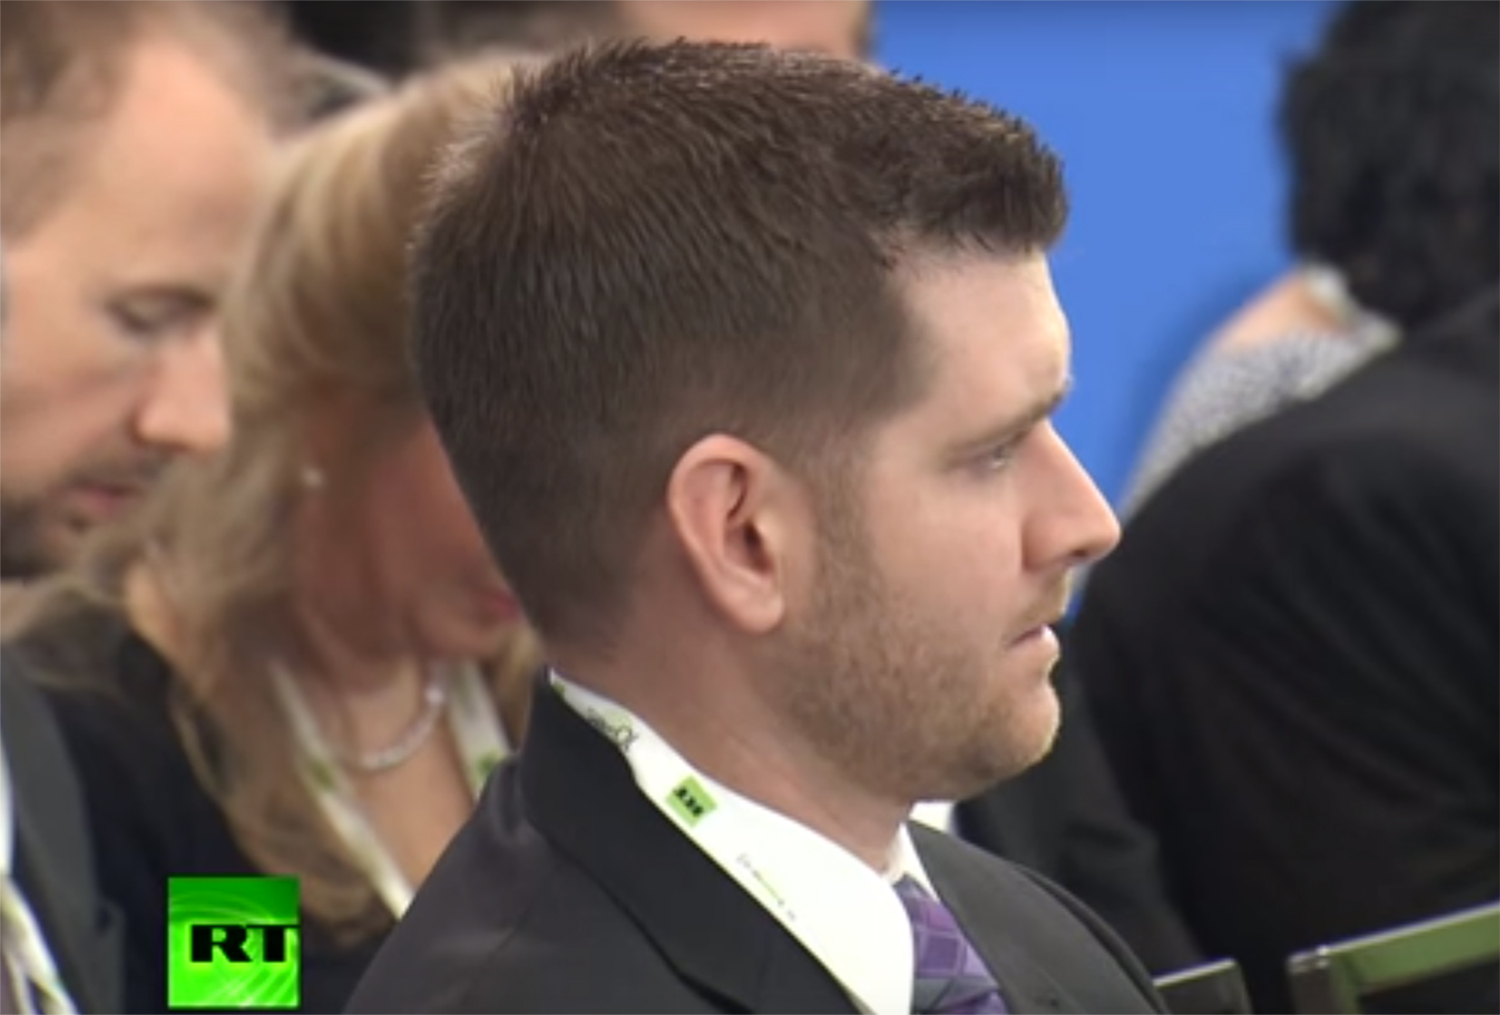 Image: Michael G. Flynn during at an RT event with his father Ret. Lt. Gen. Mike Flynn in Moscow in 2015